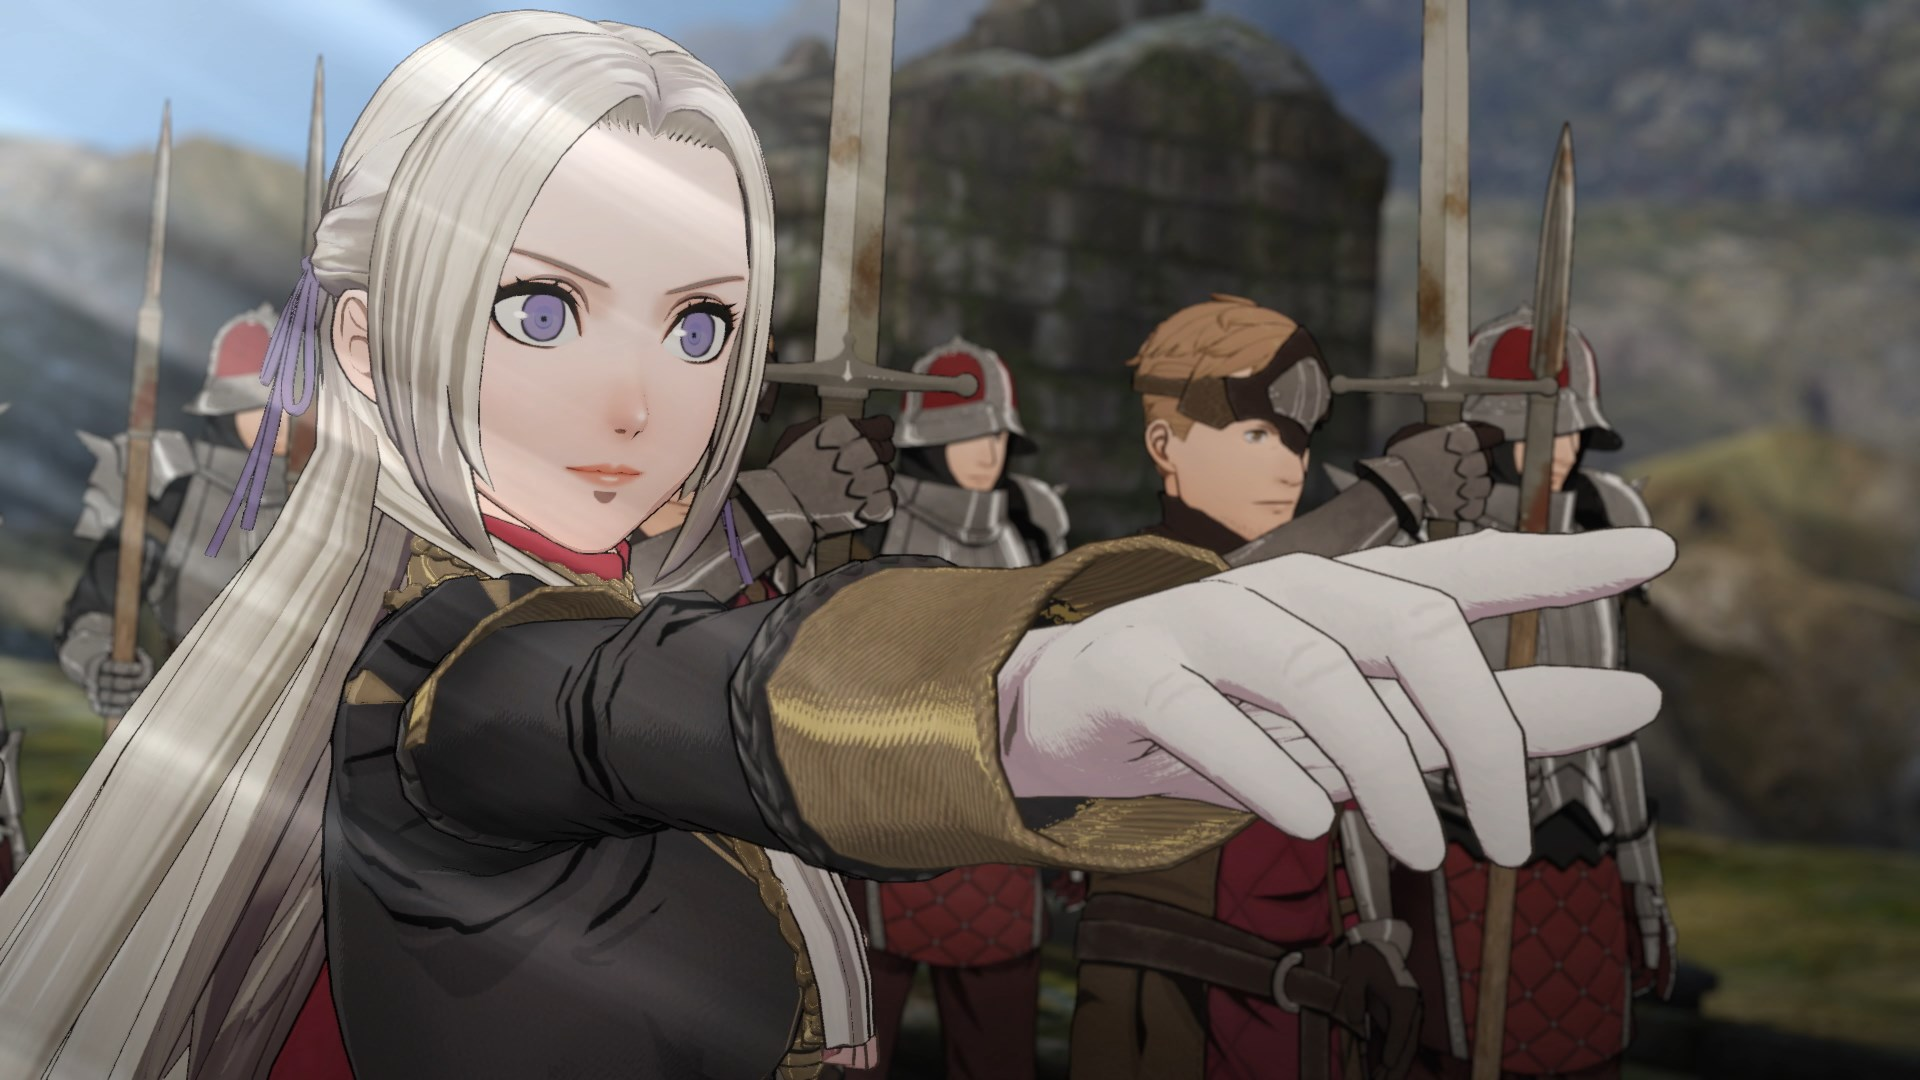 Eldegard pointing in Fire Emblem: Three Houses